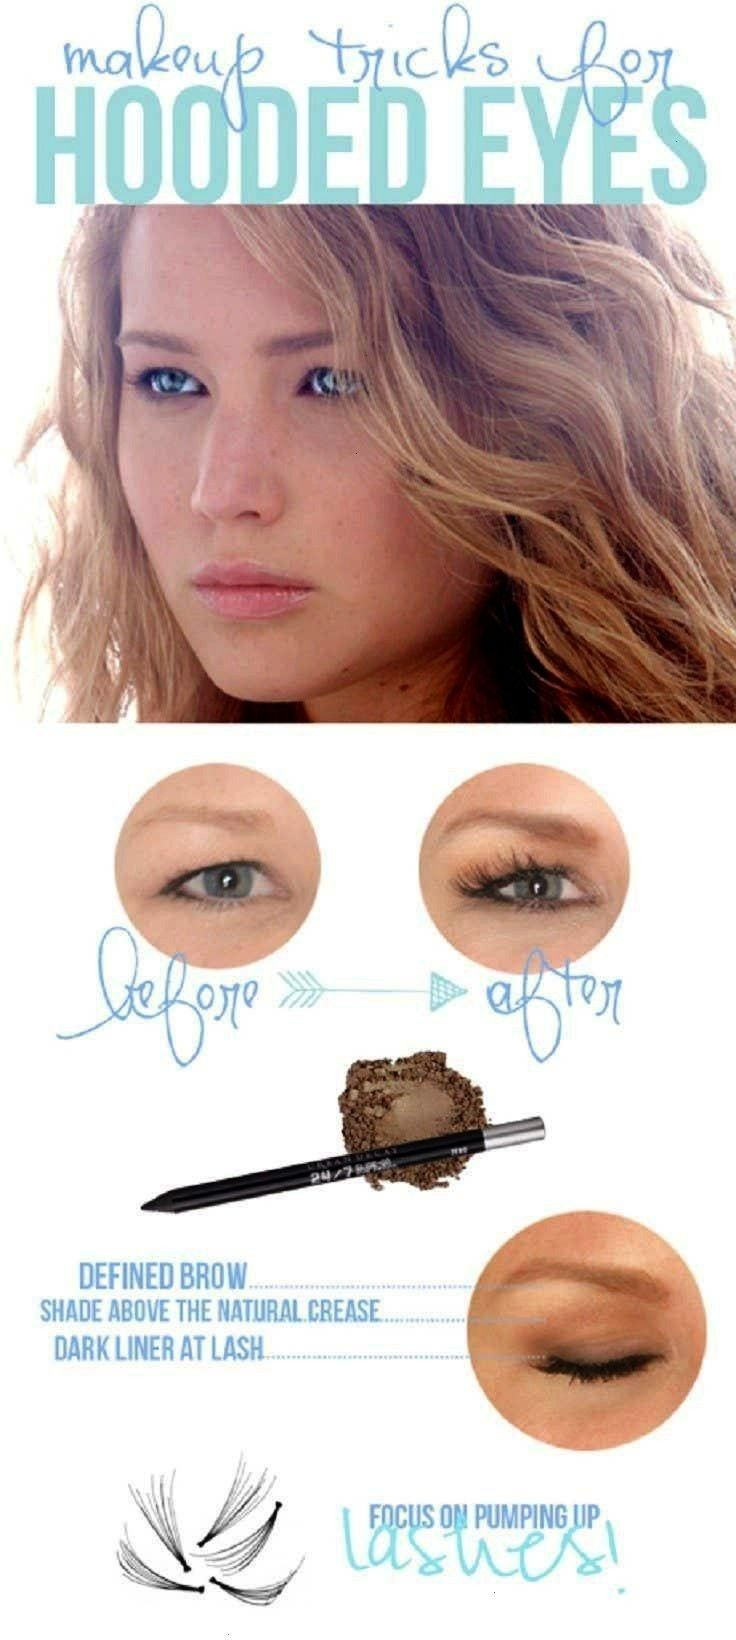 a waterproof mascara.Invest in a waterproof mascara.  Makeup Tips  Demystifying The 'Makeup Prime